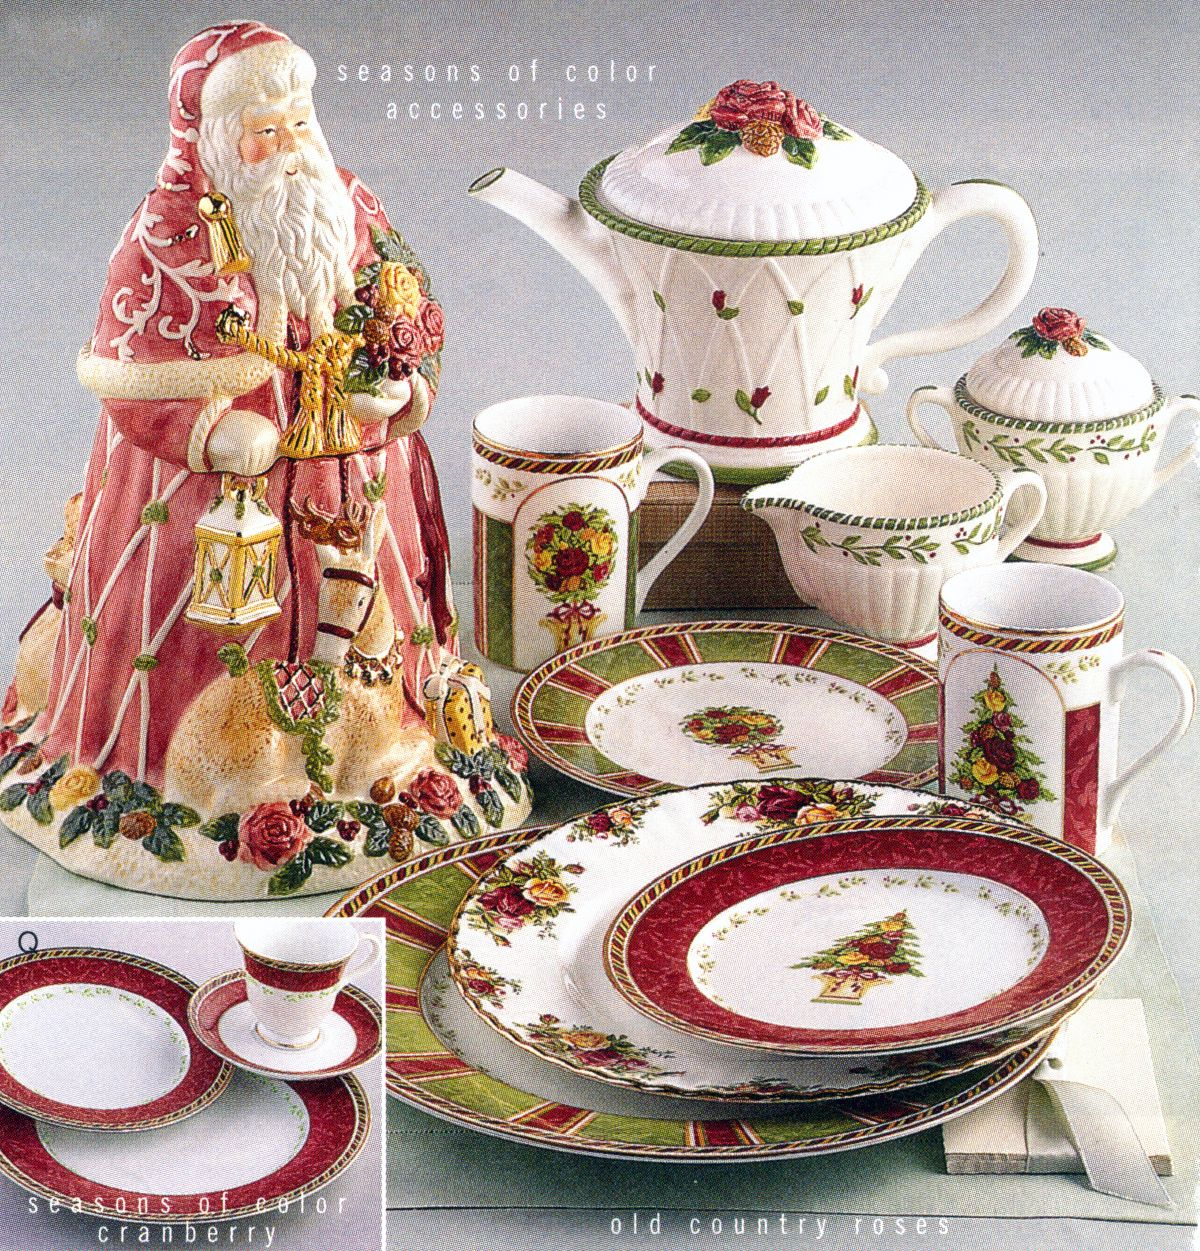 royal albert seasons of color and cranberry accents